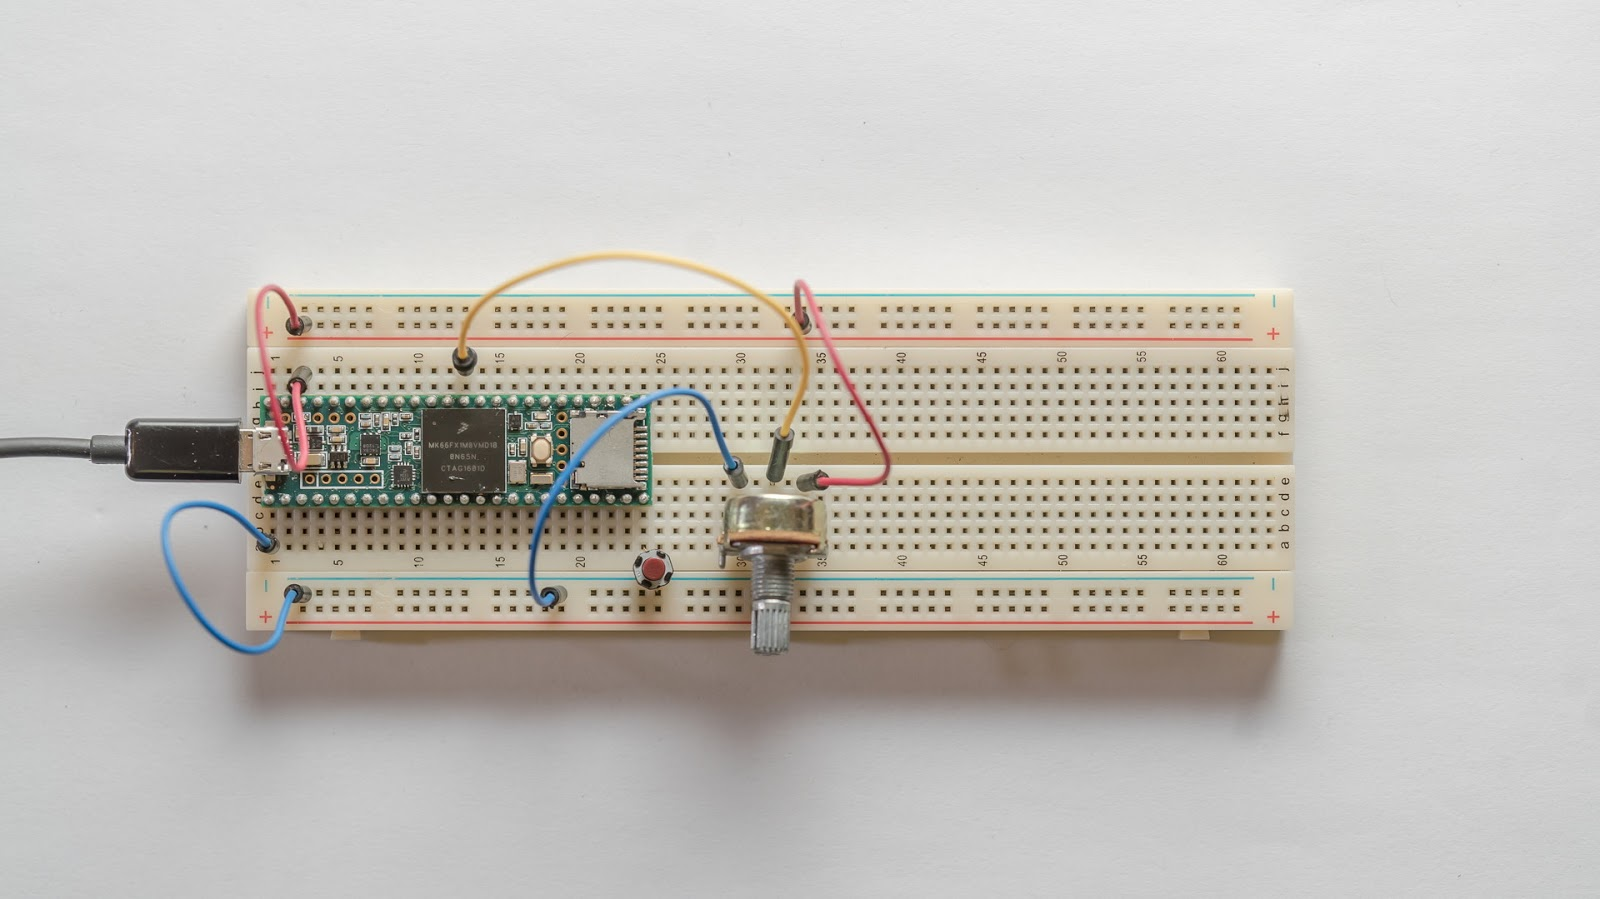 Little Scale Teensy 36 Basics Sending Pitchbends Basic Circuit Bending Tutorial Example 1 Pitchbend Data In This The Value Is Sent Based On Potentiometer And Push Button Sends Note Off